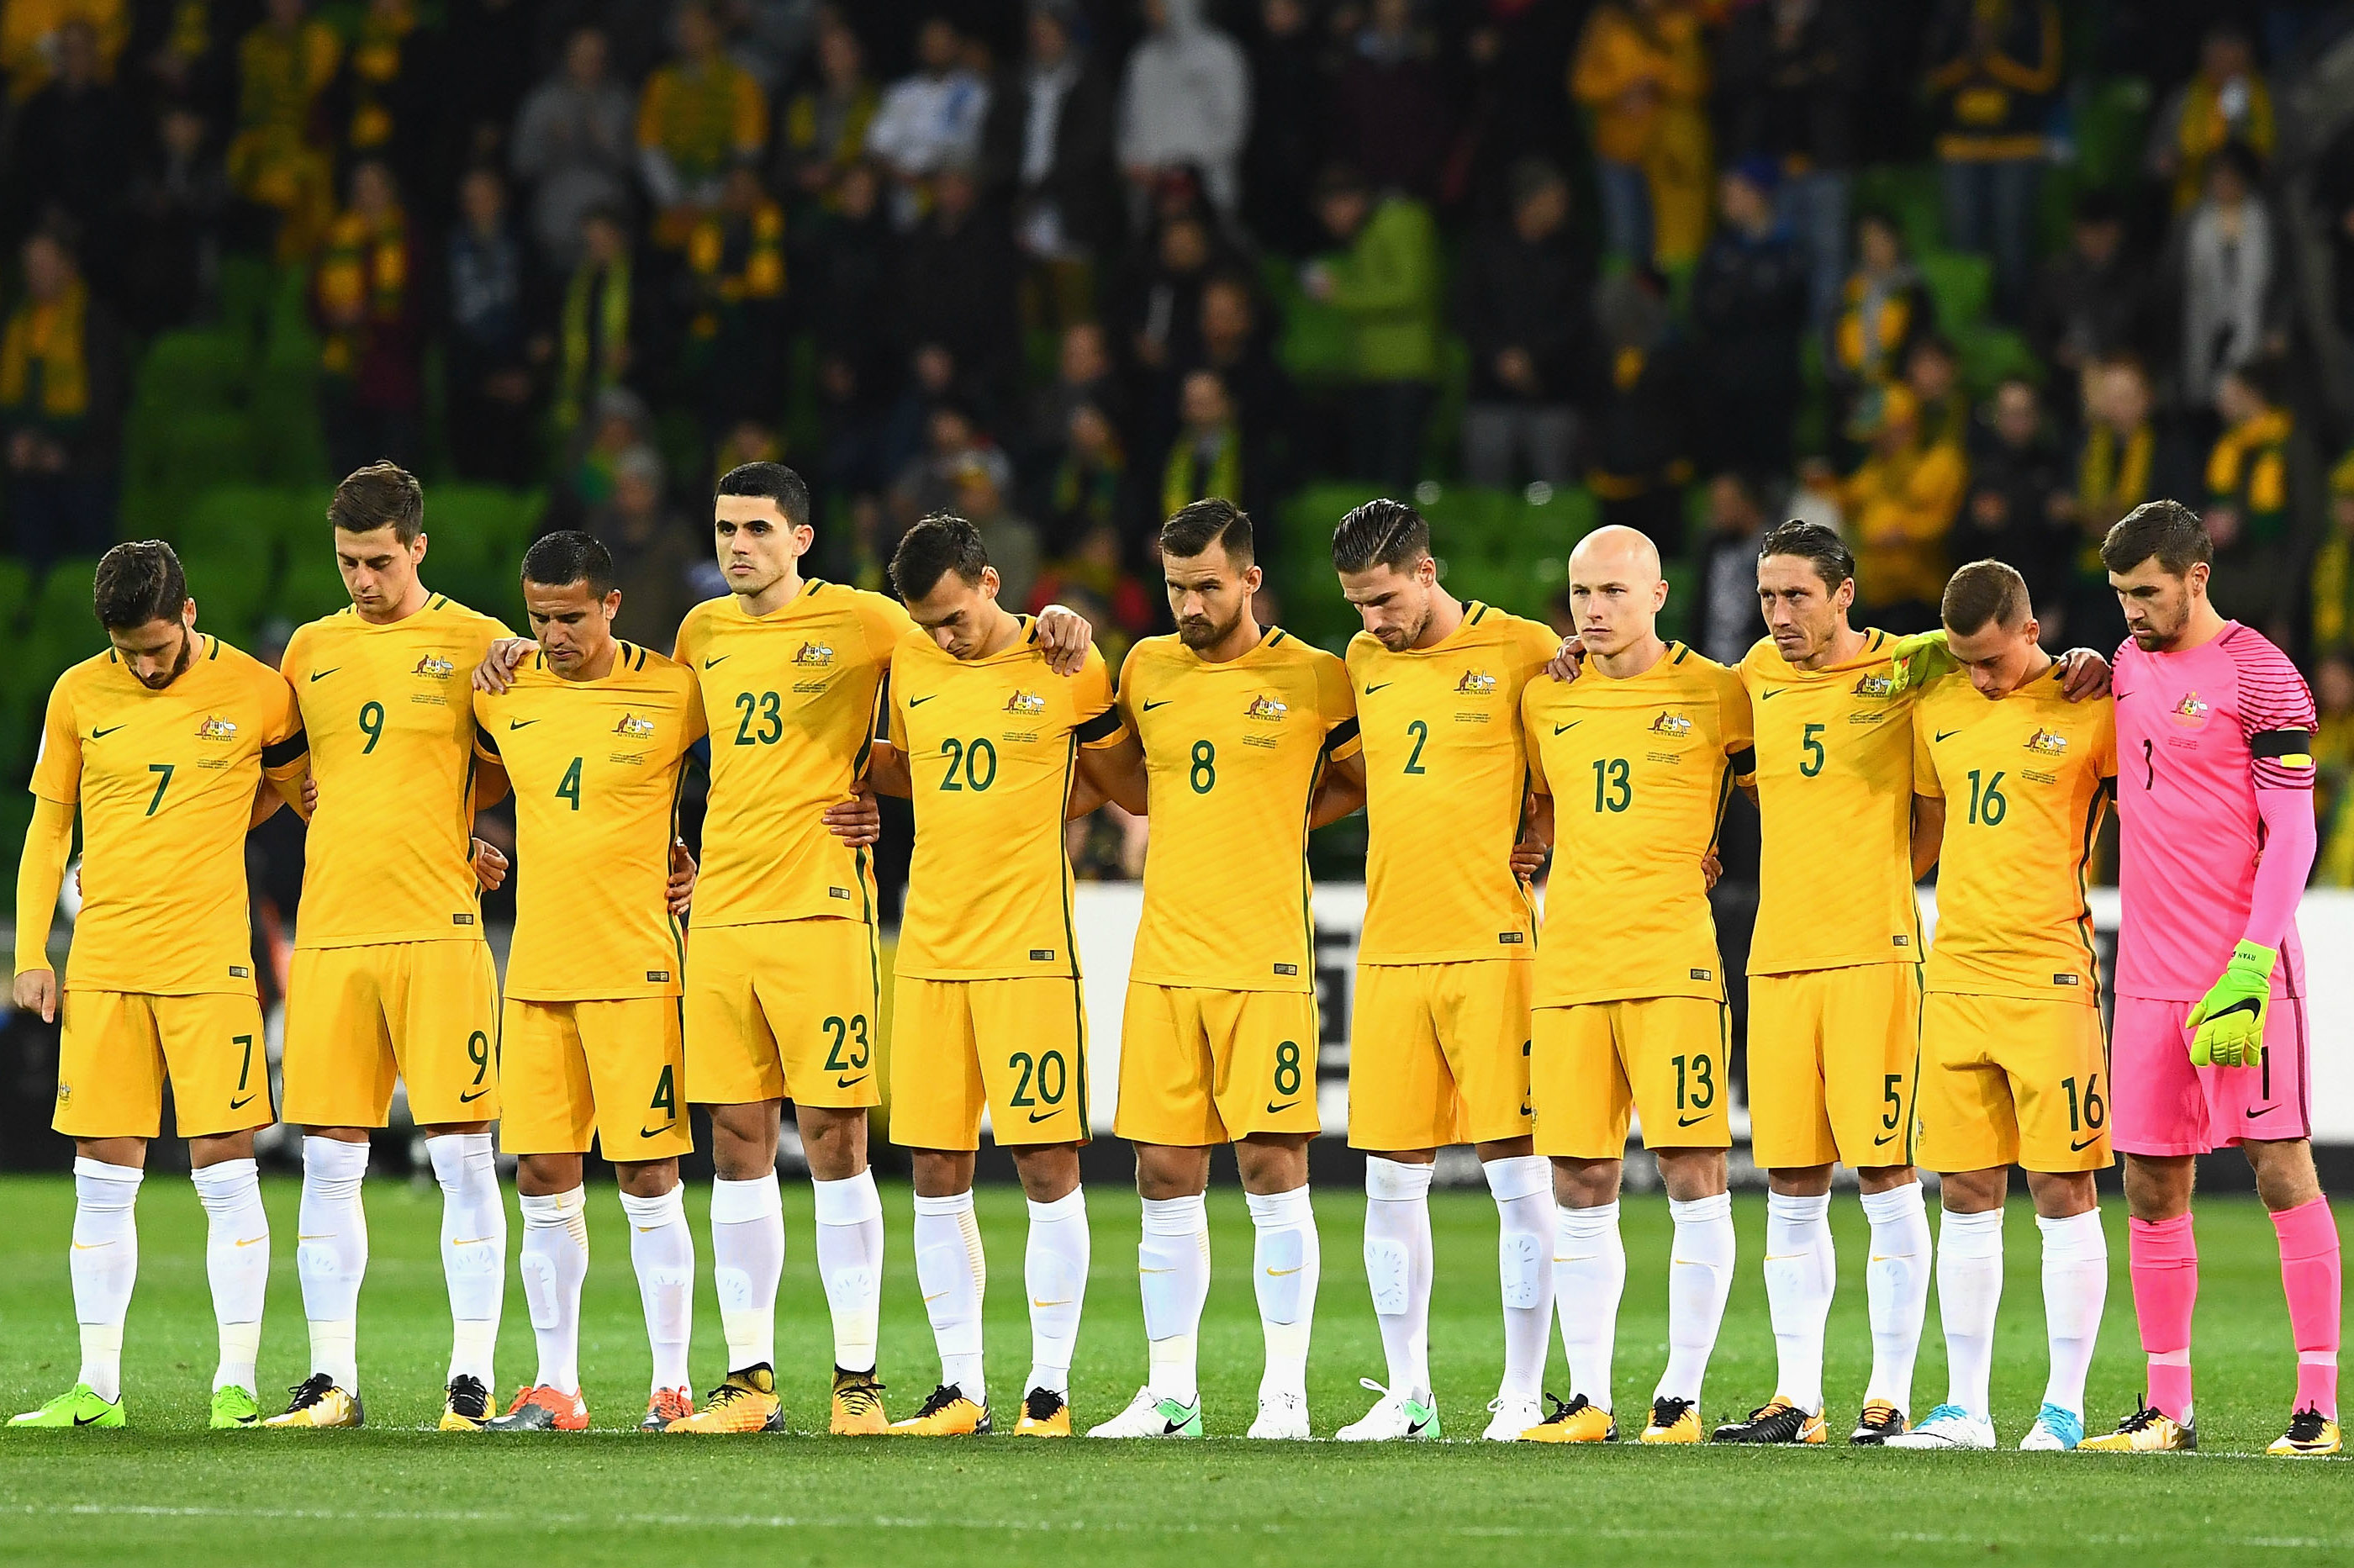 The Caltex Socceroos starting XI against Thailand in Melbourne.